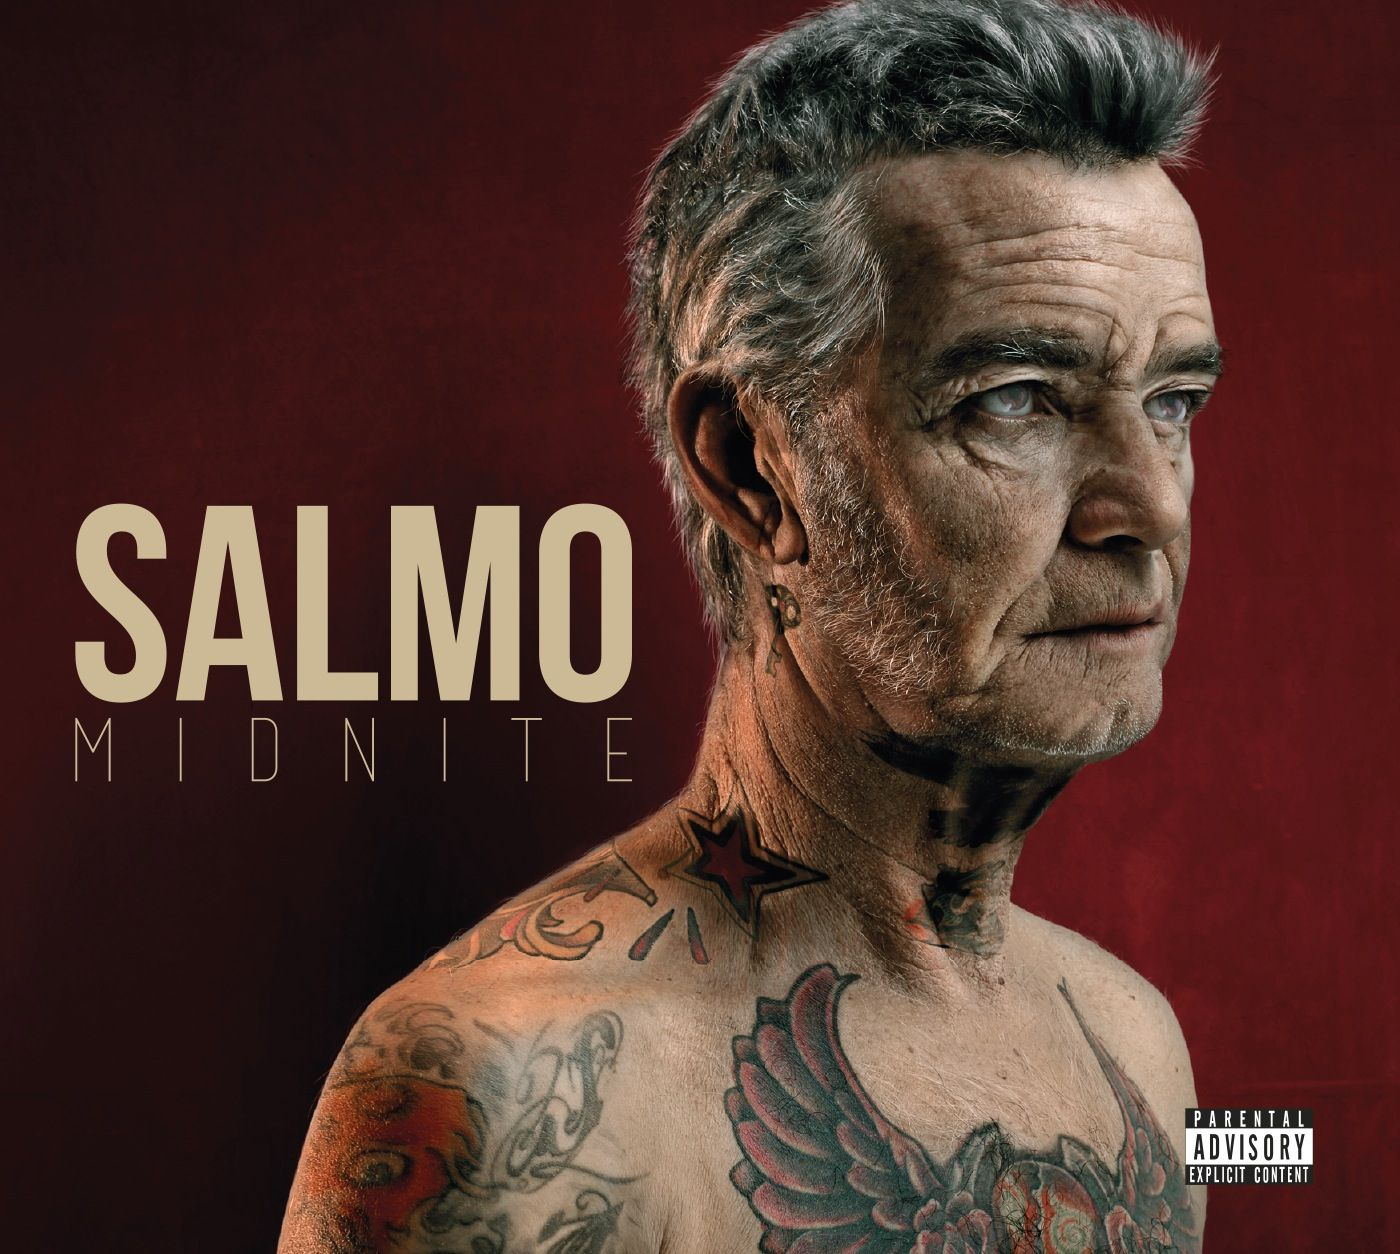 Salmo - Midnite album cover